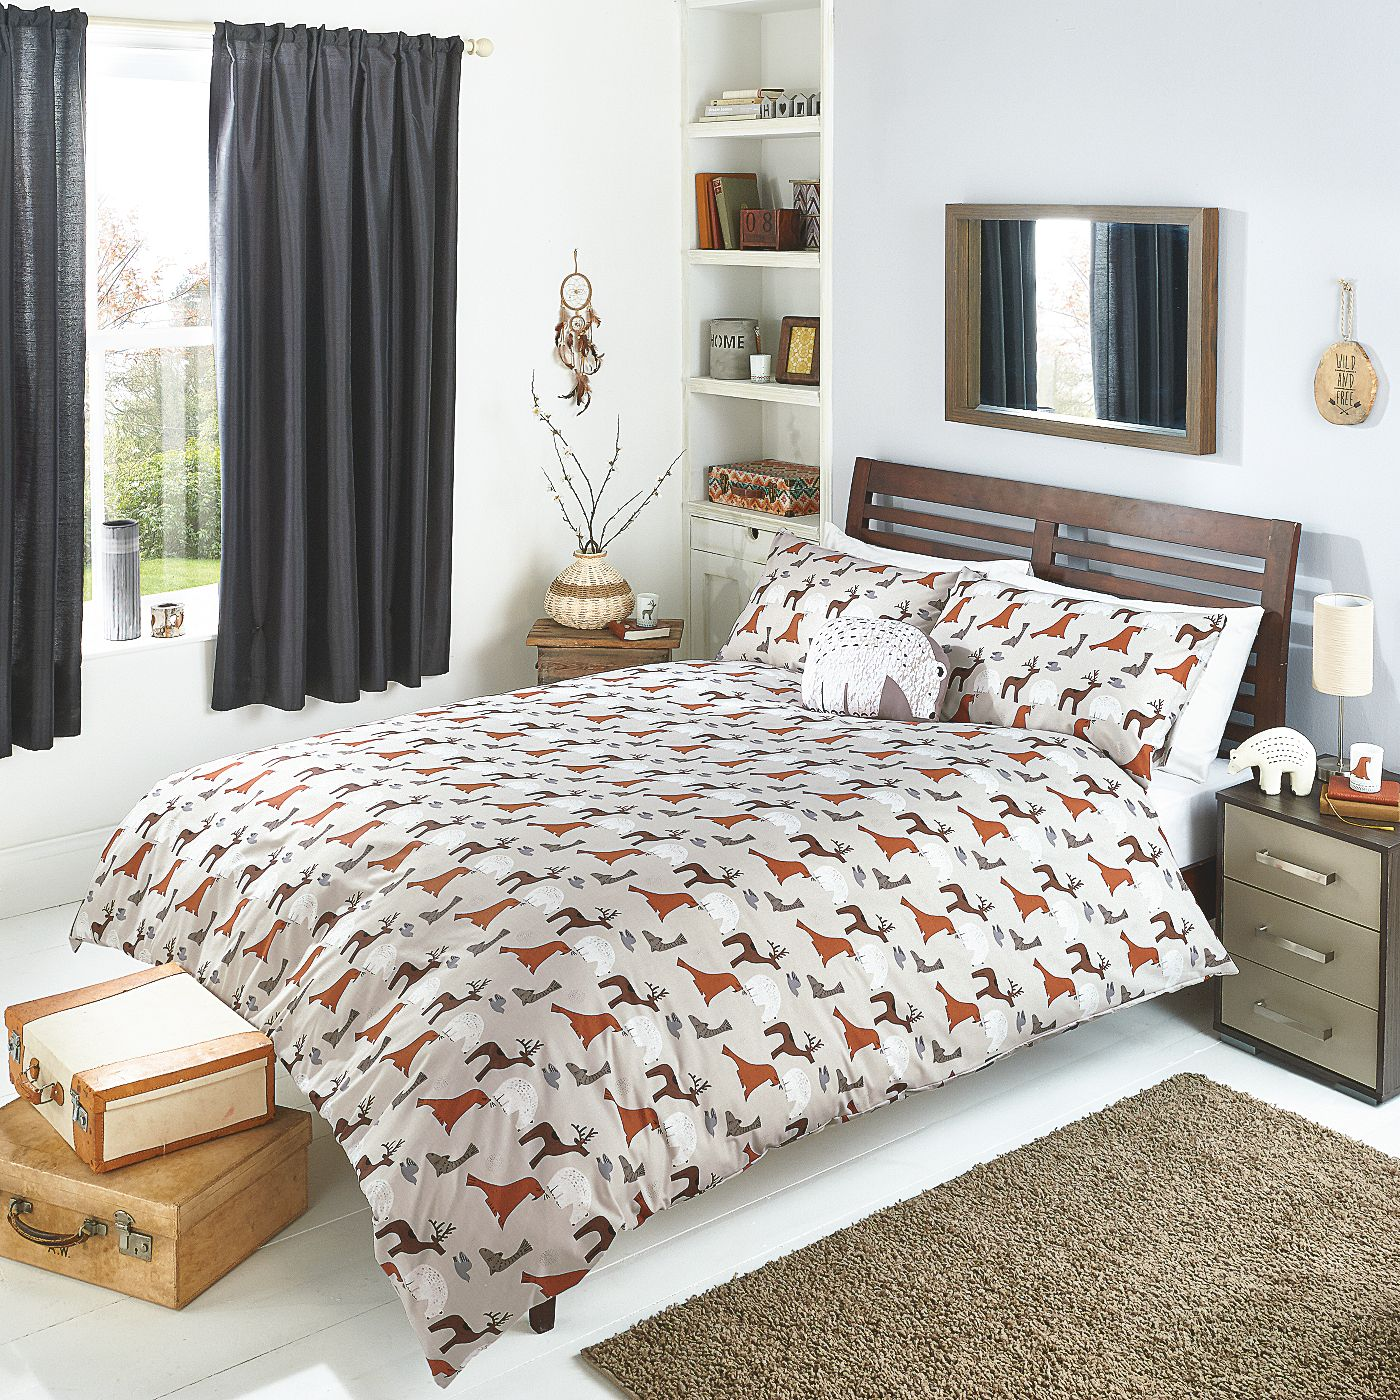 online kylie now bedding at and champagne why pin to pinterest collect minogue duvet a of where not buy fraser cover house in sets omara your store